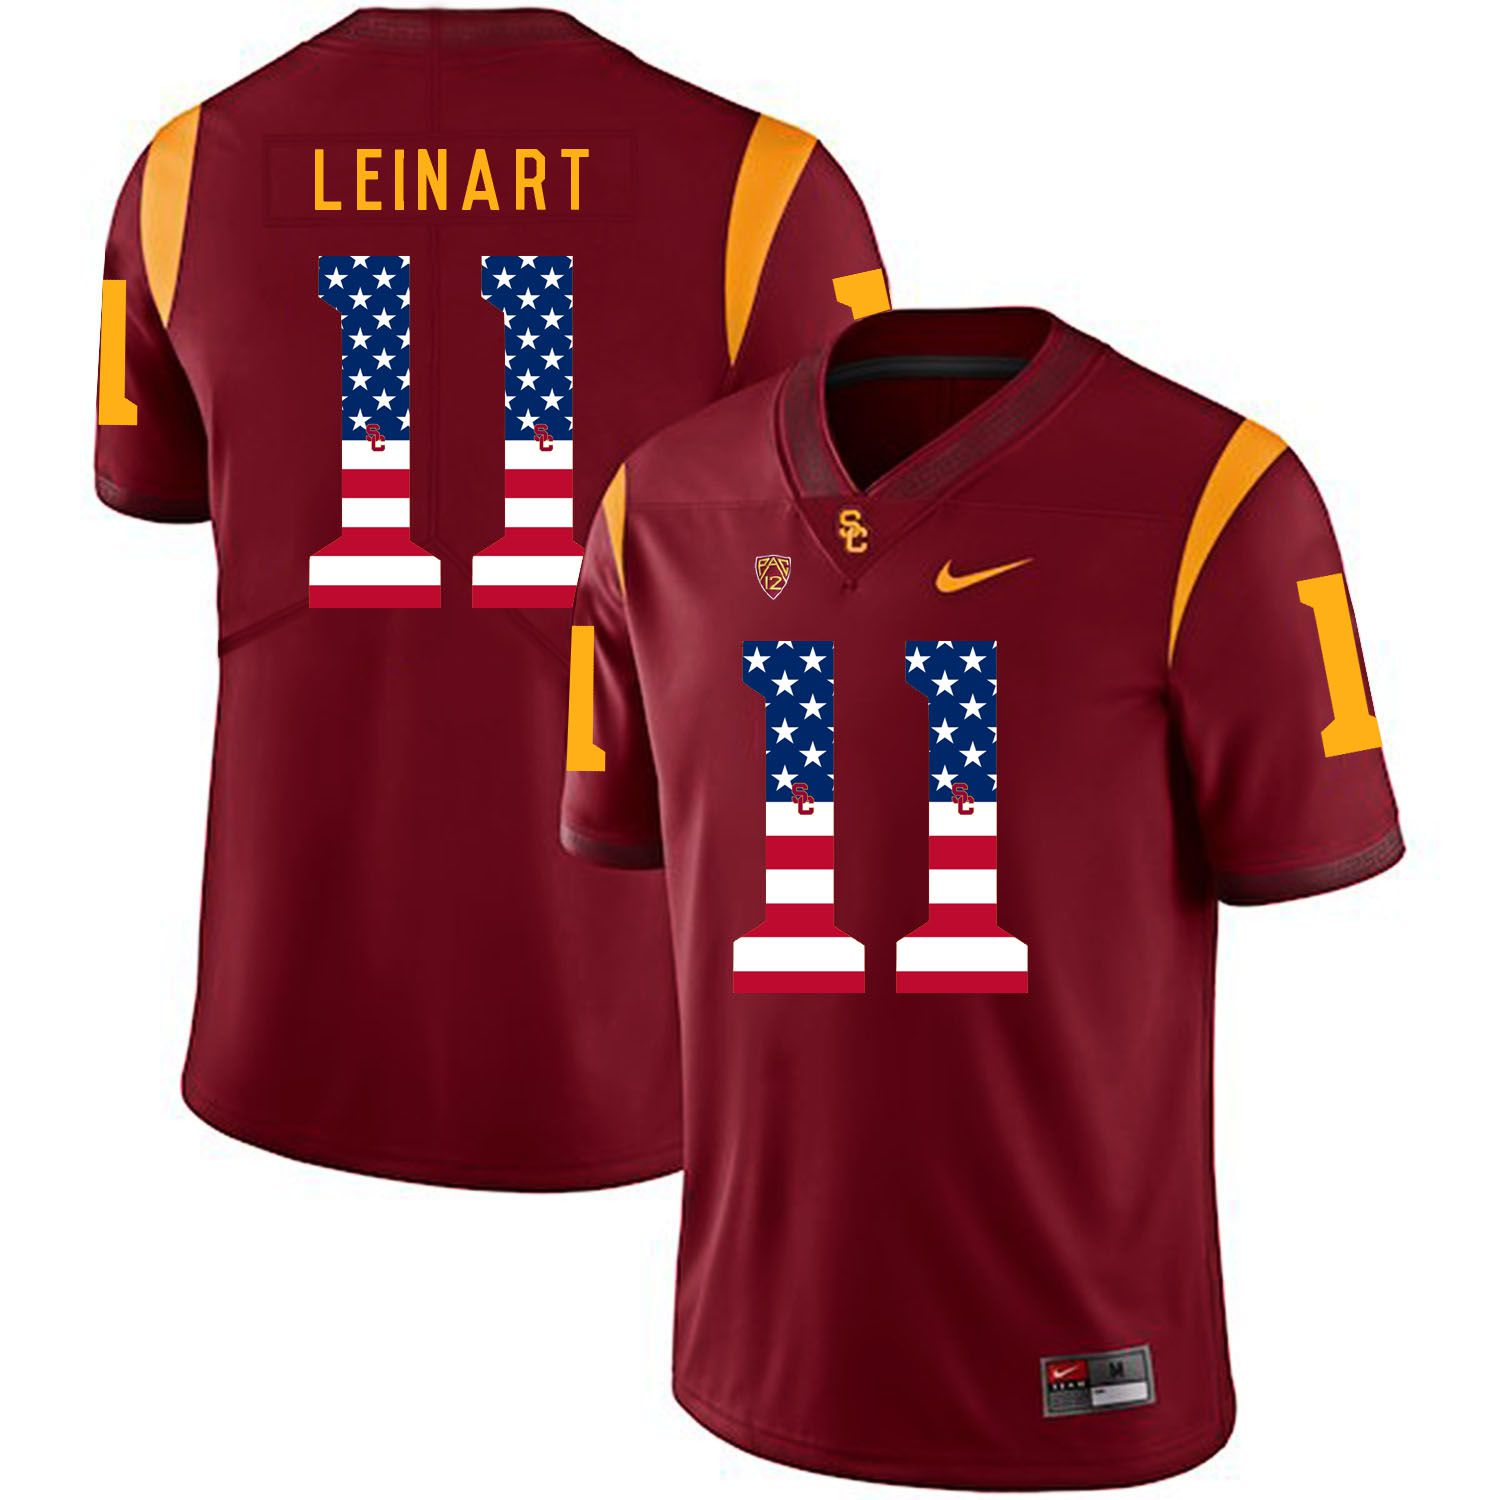 Men USC Trojans 11 Leinart Red Flag Customized NCAA Jerseys